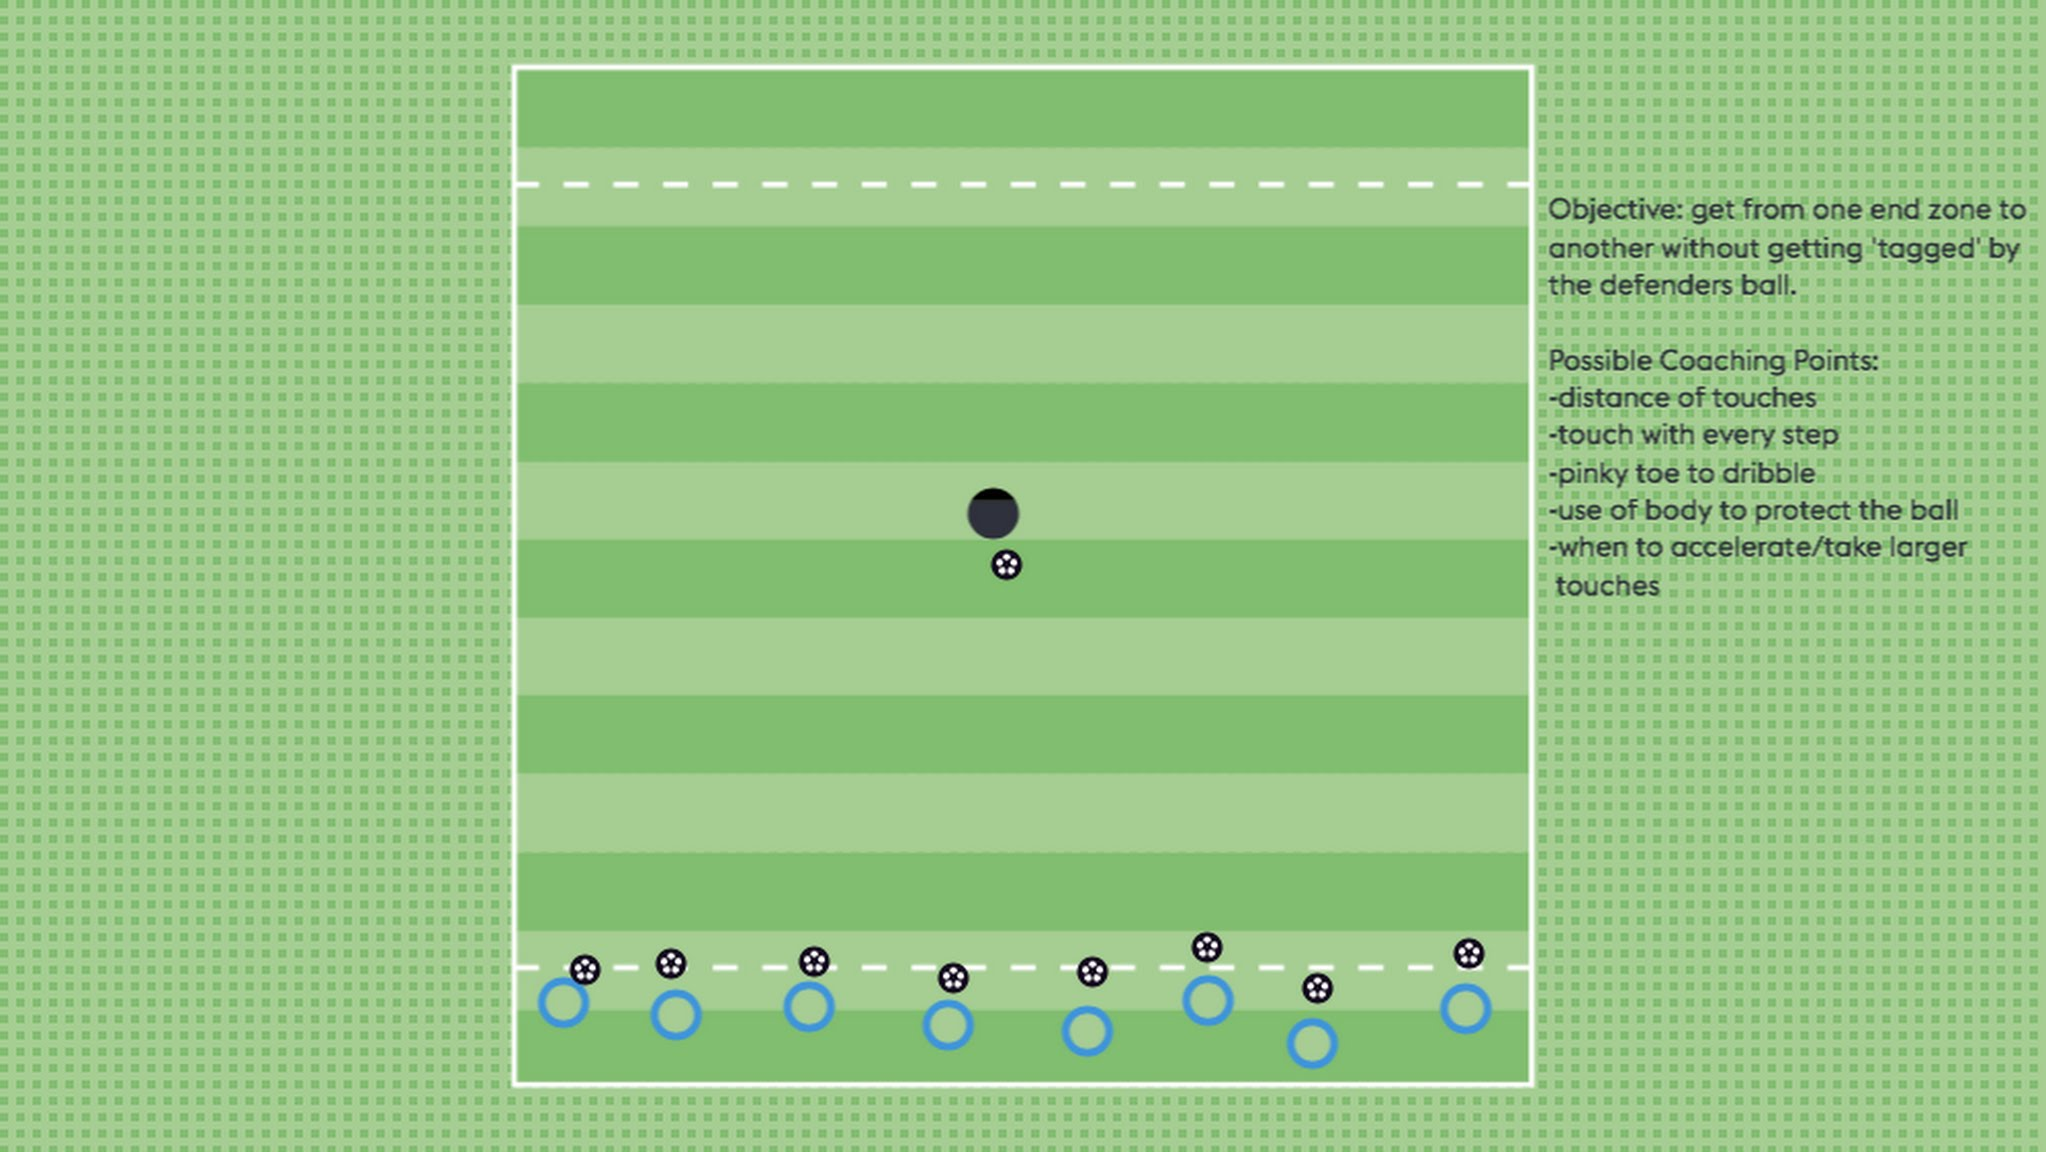 For a five year old, a creative solution might be to pick the ball up and run with it. They might sit on the ball so the defender can't hit it. This might be similar to something they've seen others do or an idea they've come up with on their own.